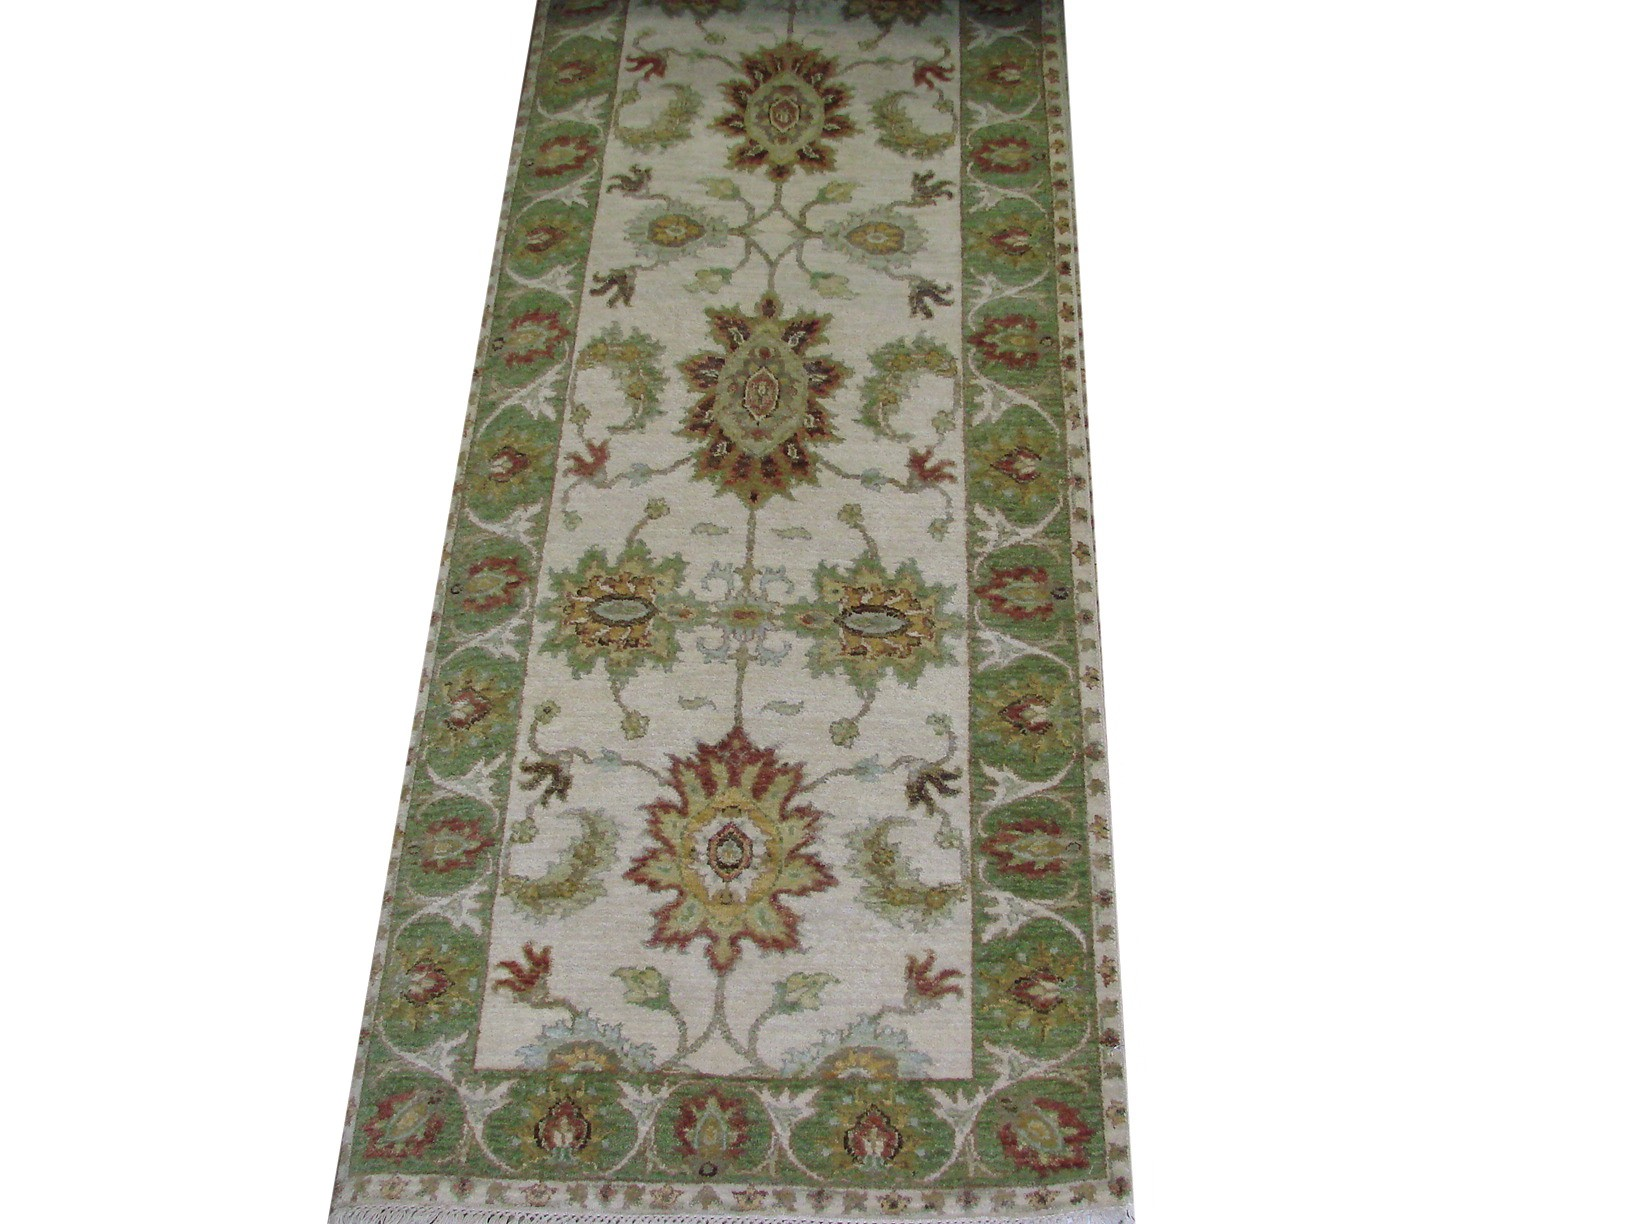 8 Runner Traditional Hand Knotted Wool Area Rug - MR021761